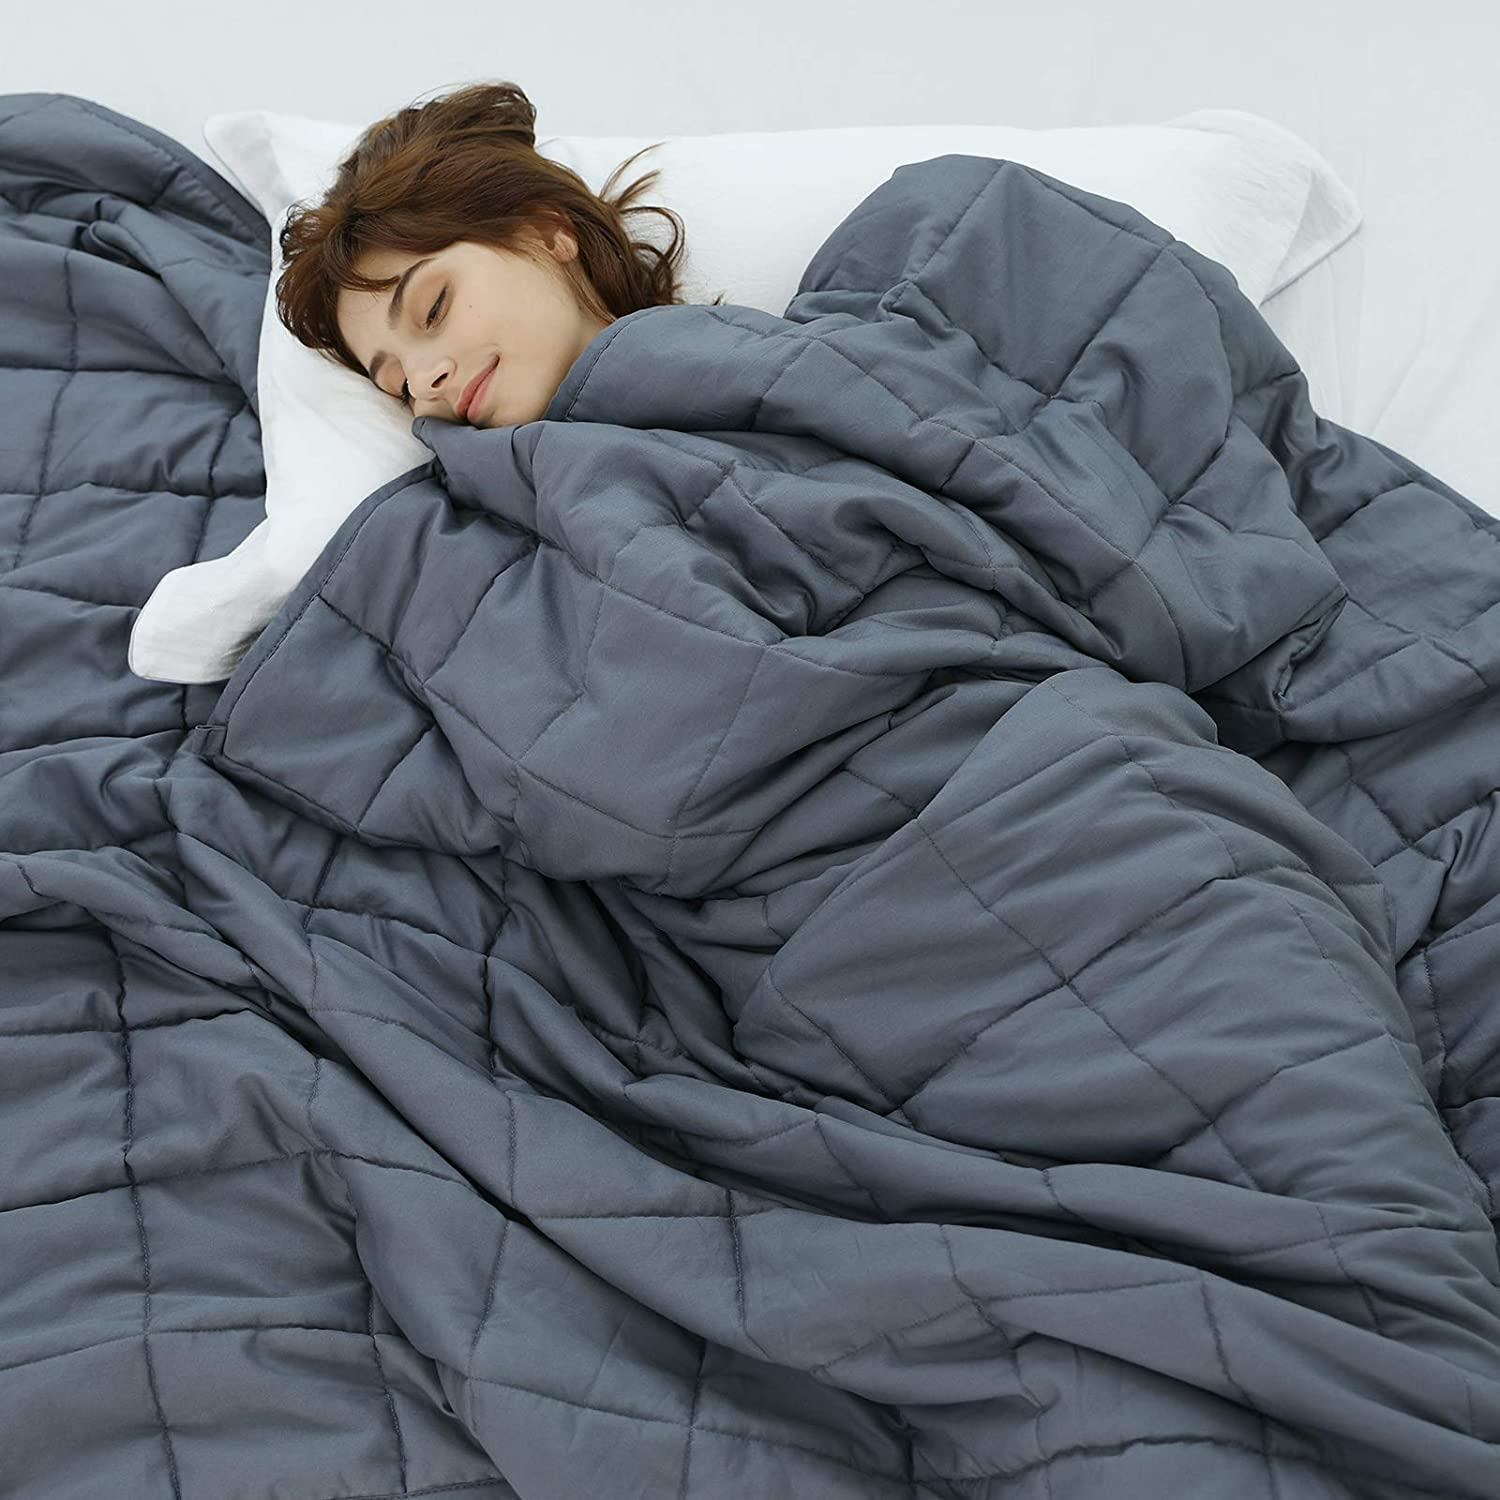 gifts-for-sister-in-law-weighted-blanket